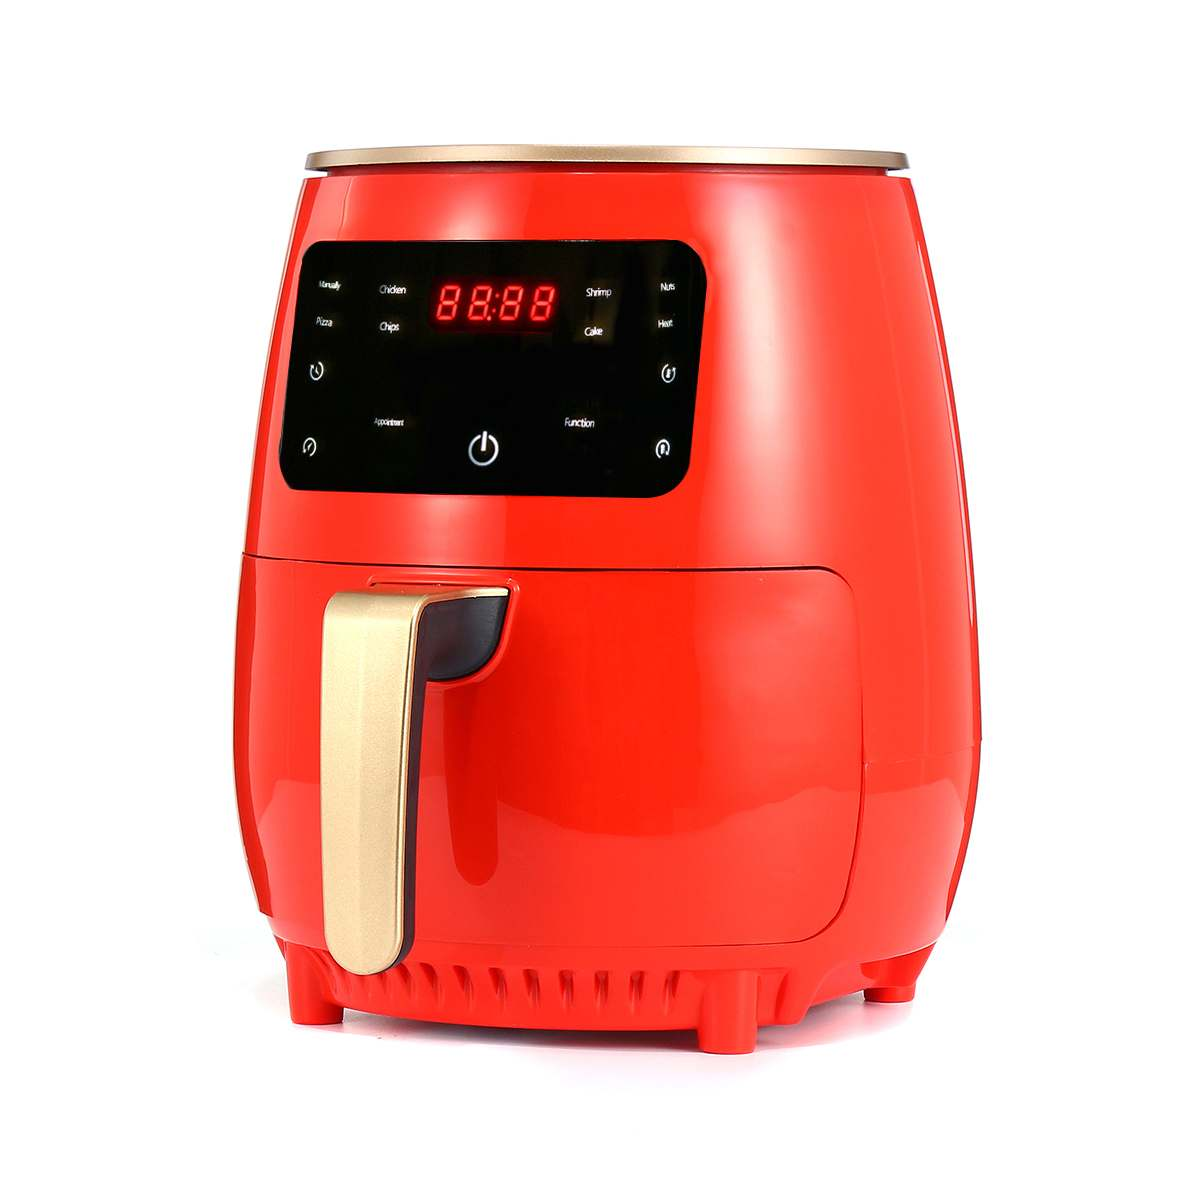 4.5L 1200W Air Fryer Oil free Health Fryer Cooker 220V Multifunction Smart Touch LCD Deep Airfryer Pizza Fryer for French fries